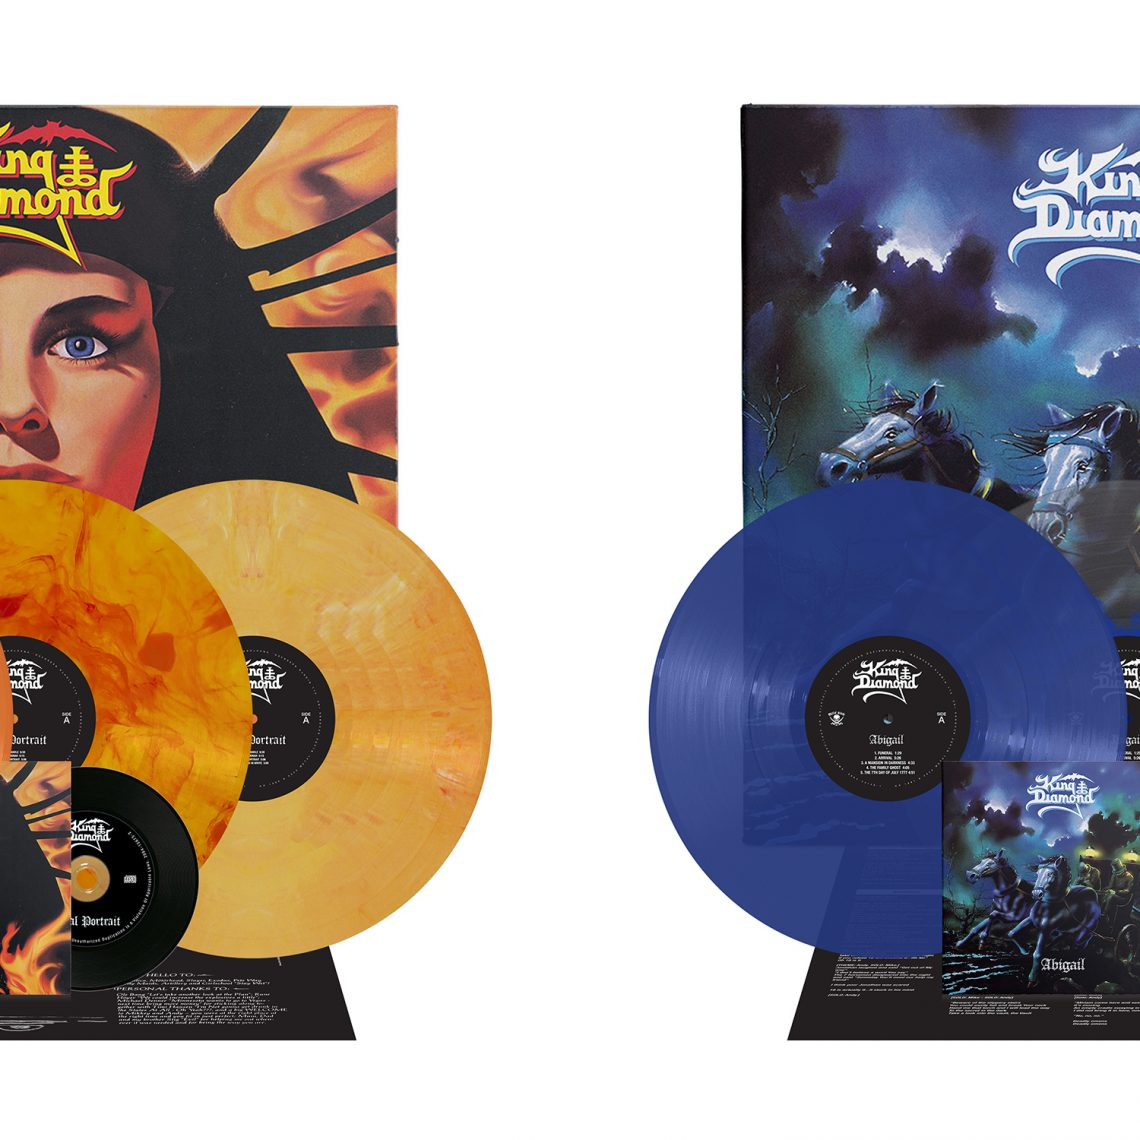 King Diamond: 'AbigaiI', 'Fatal Portrait' CD & LP re-issues now available via Metal Blade Records